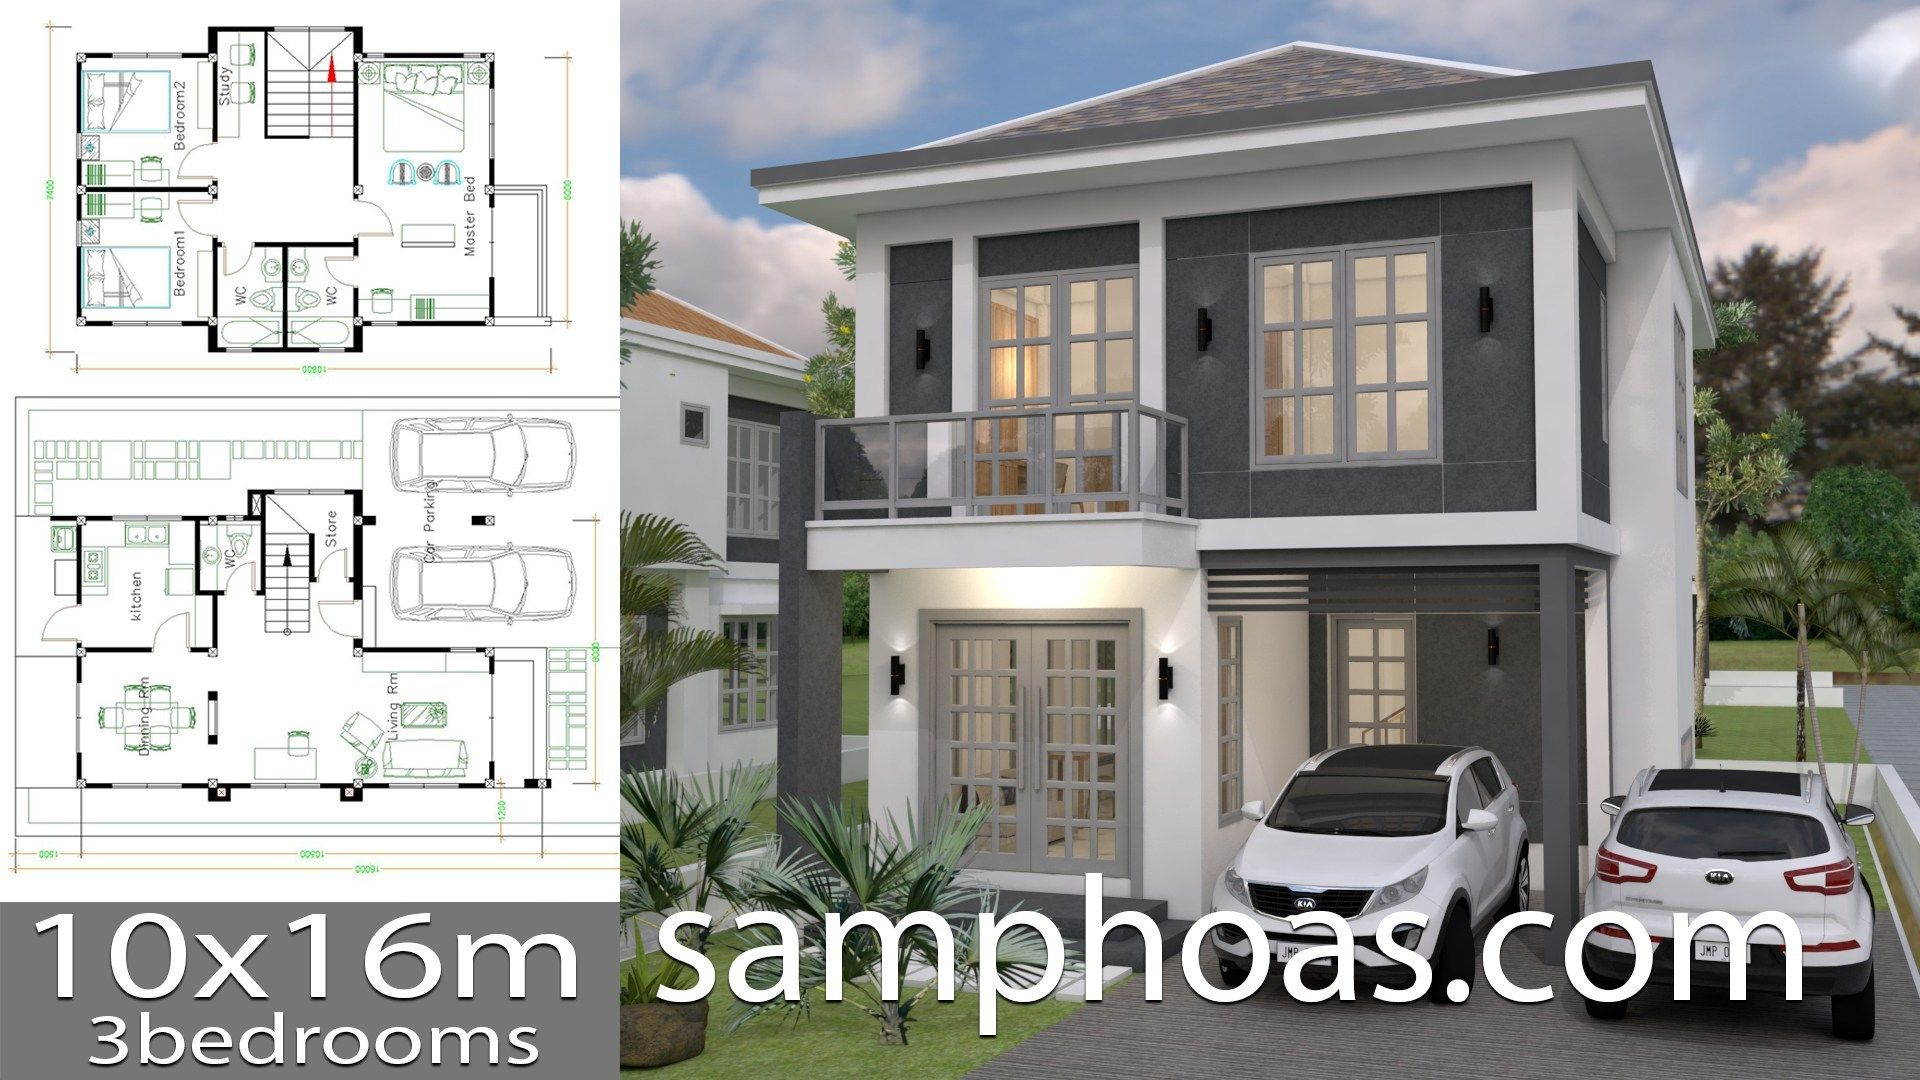 House Plans 10x16m With 3 Bedrooms Sam House Plans House Plans House Layout Plans Home Design Plans